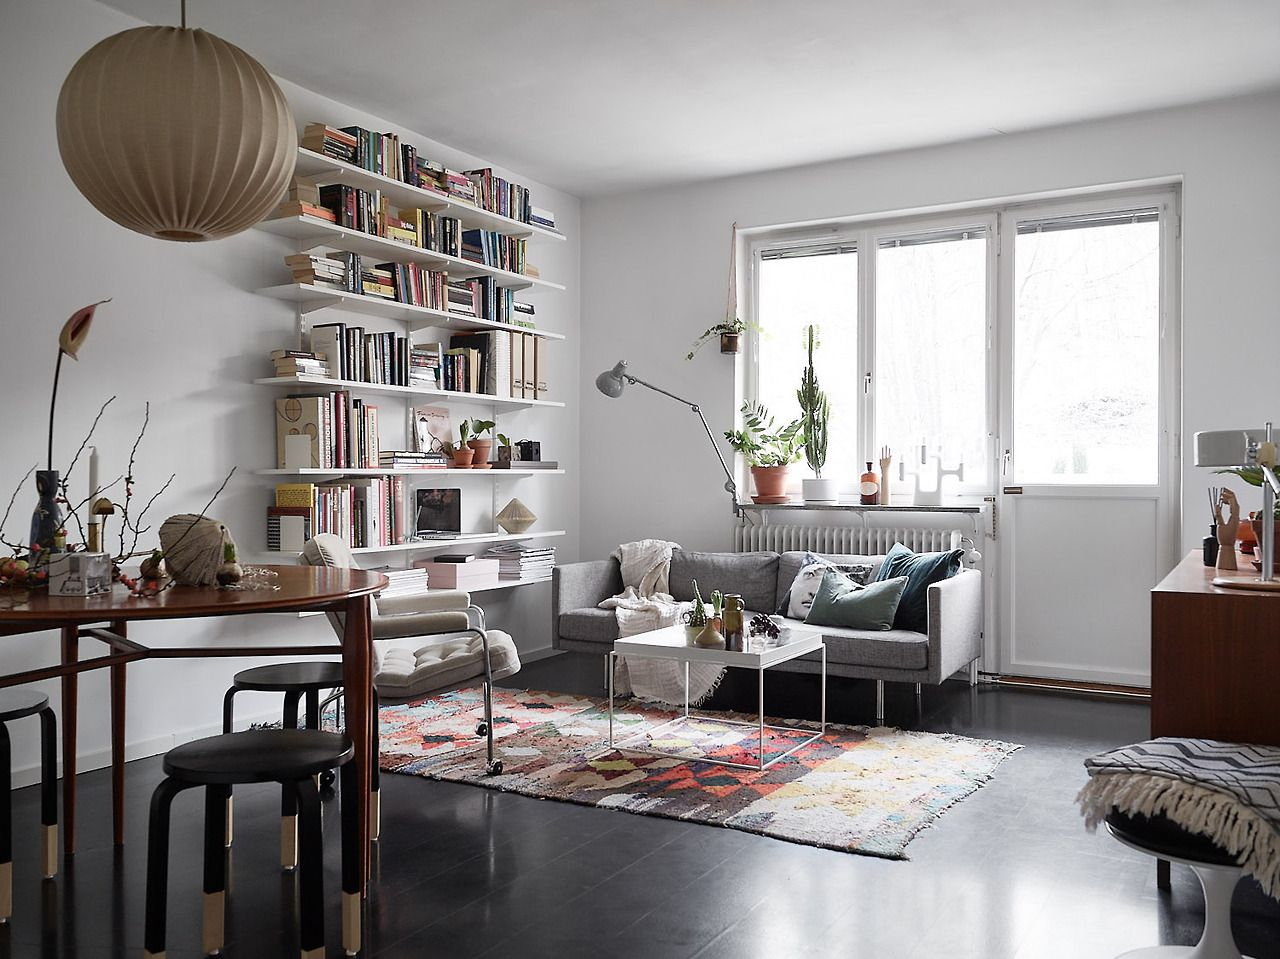 Scandinavian Livng Room With Bookshelves Living Room Scandinavian Living Room Arrangements Living Room Interior